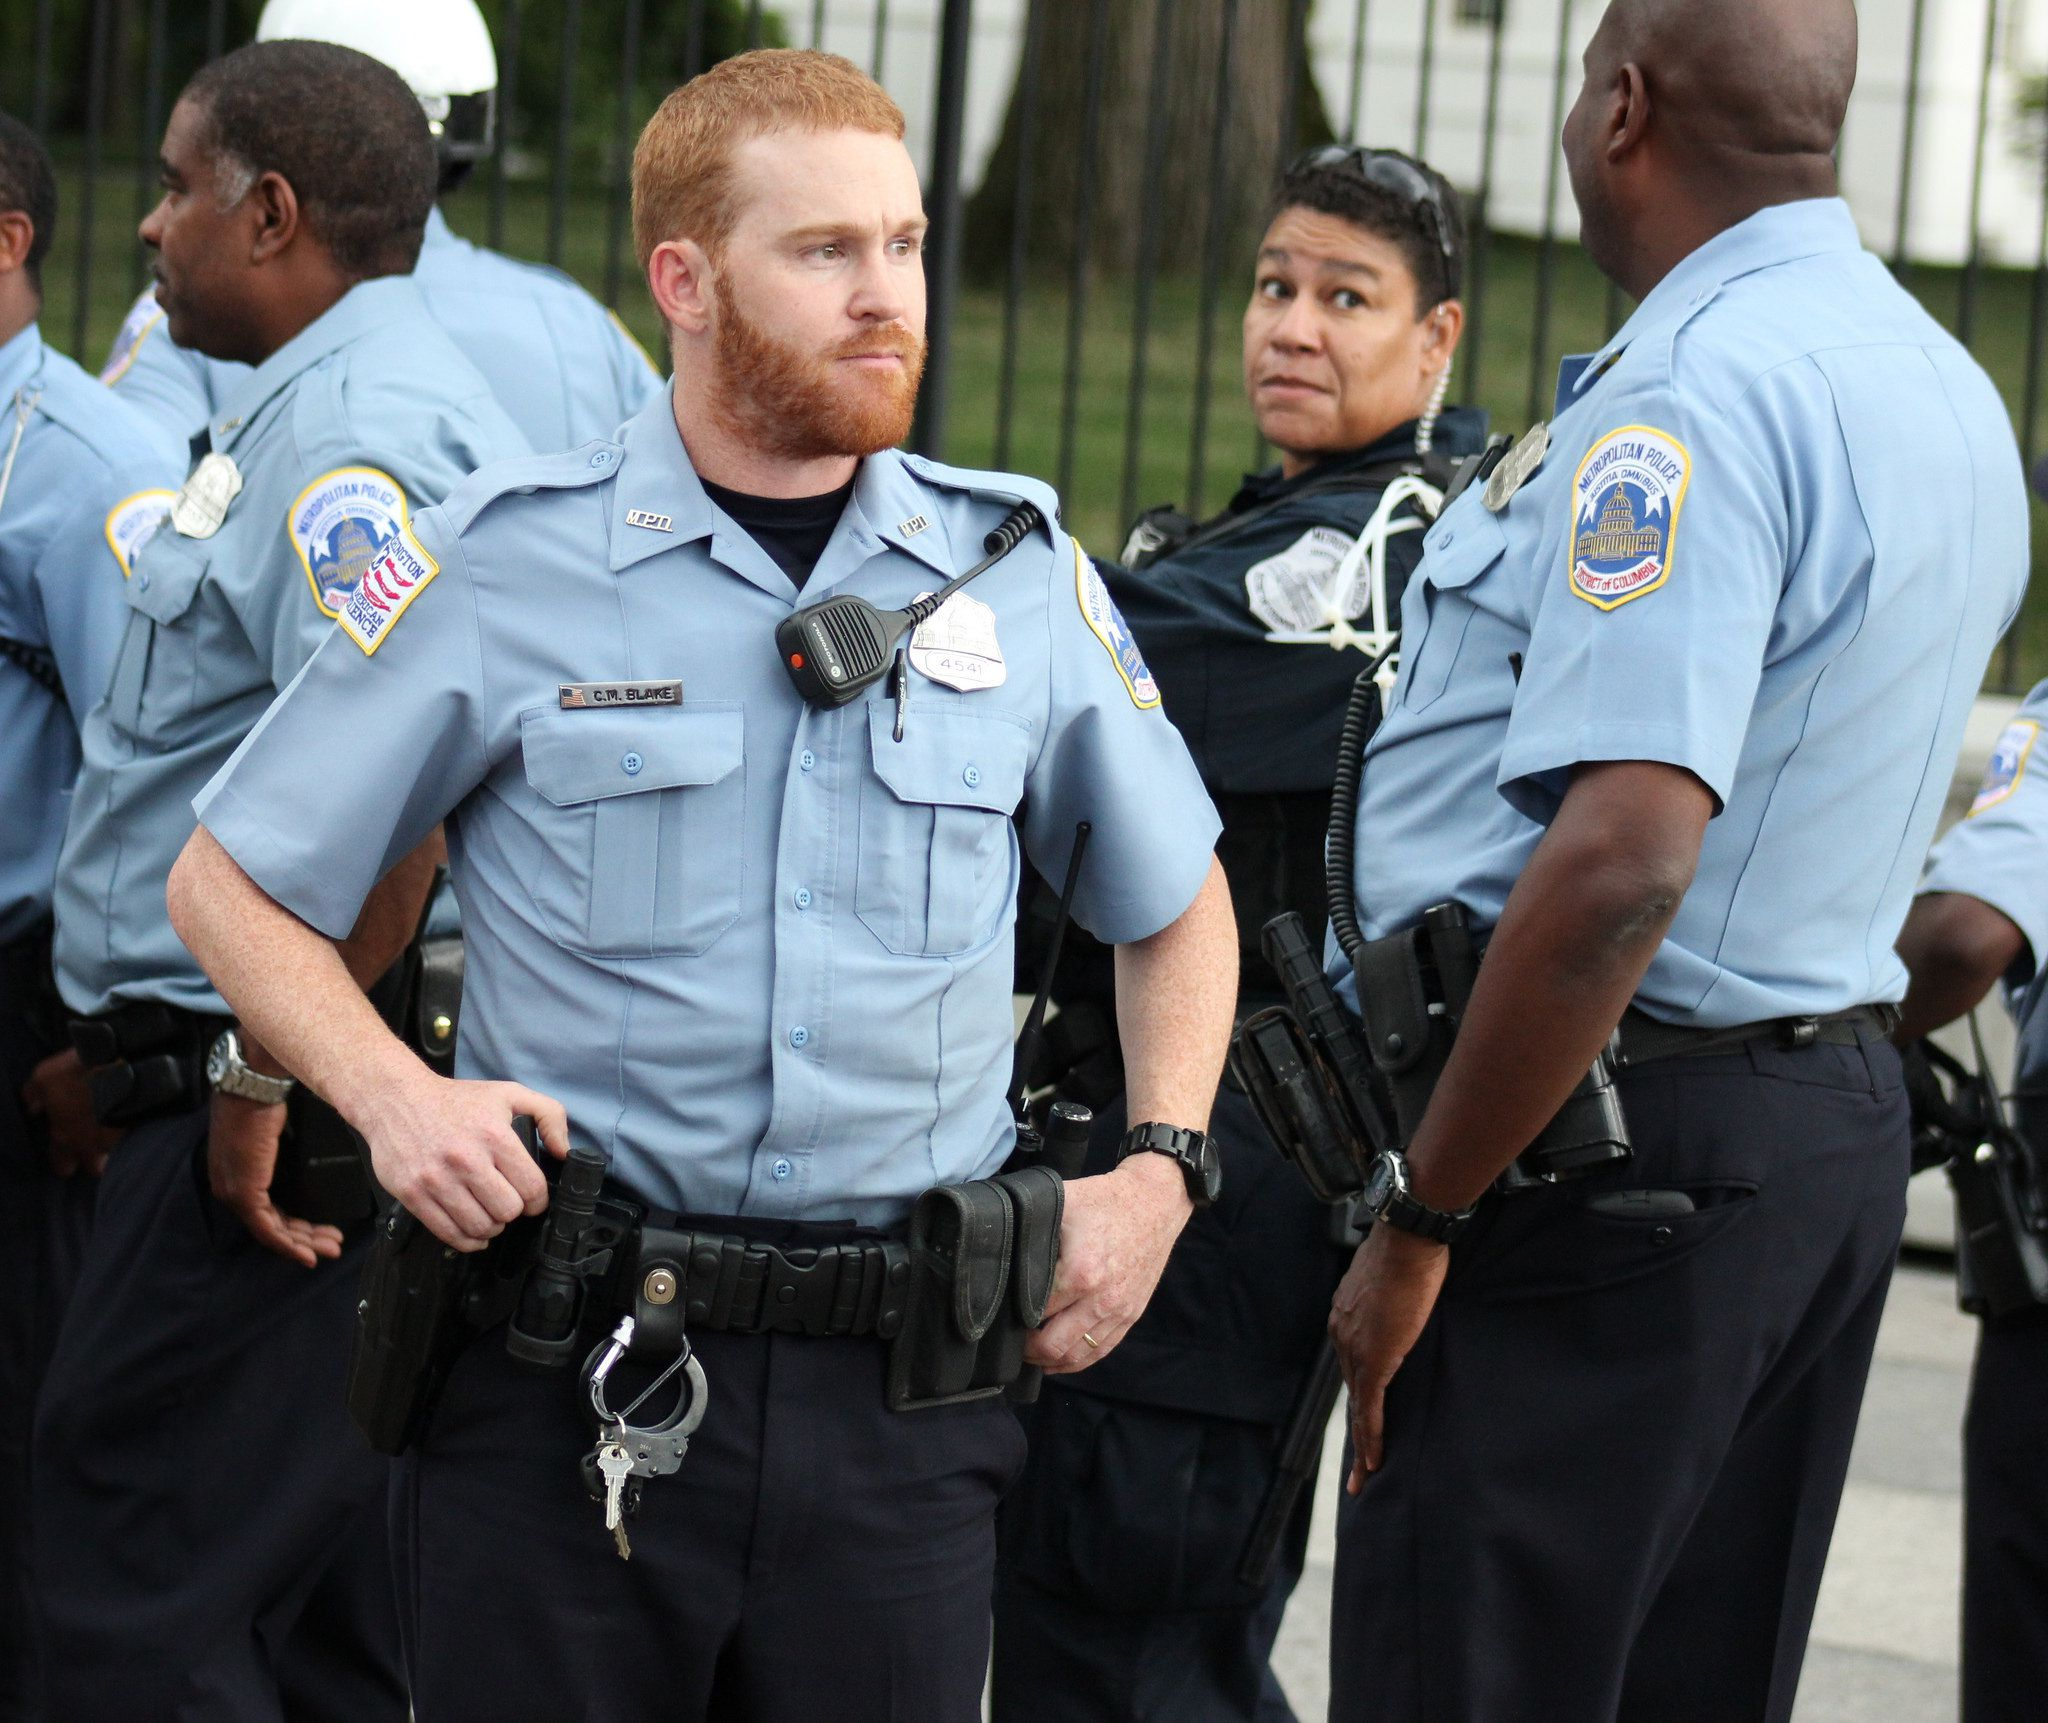 why i want to become a police officer essay academic papers